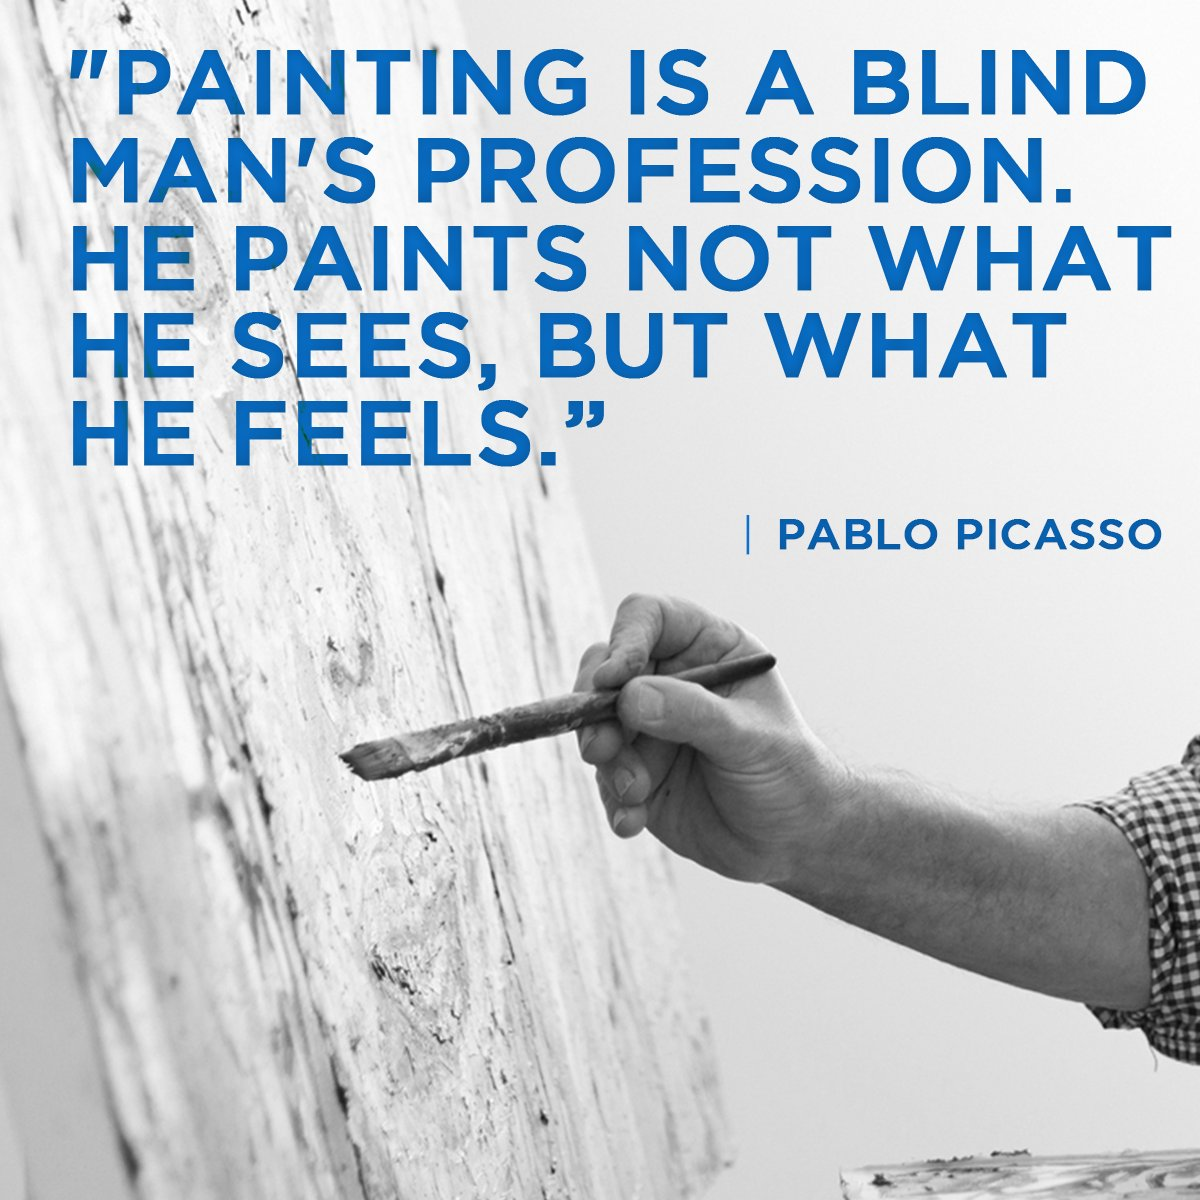 """Painting is a blind man's profession. He paints not what he sees, but what he feels..."" - Pablo Picasso https://t.co/2JU6HaQWSl"